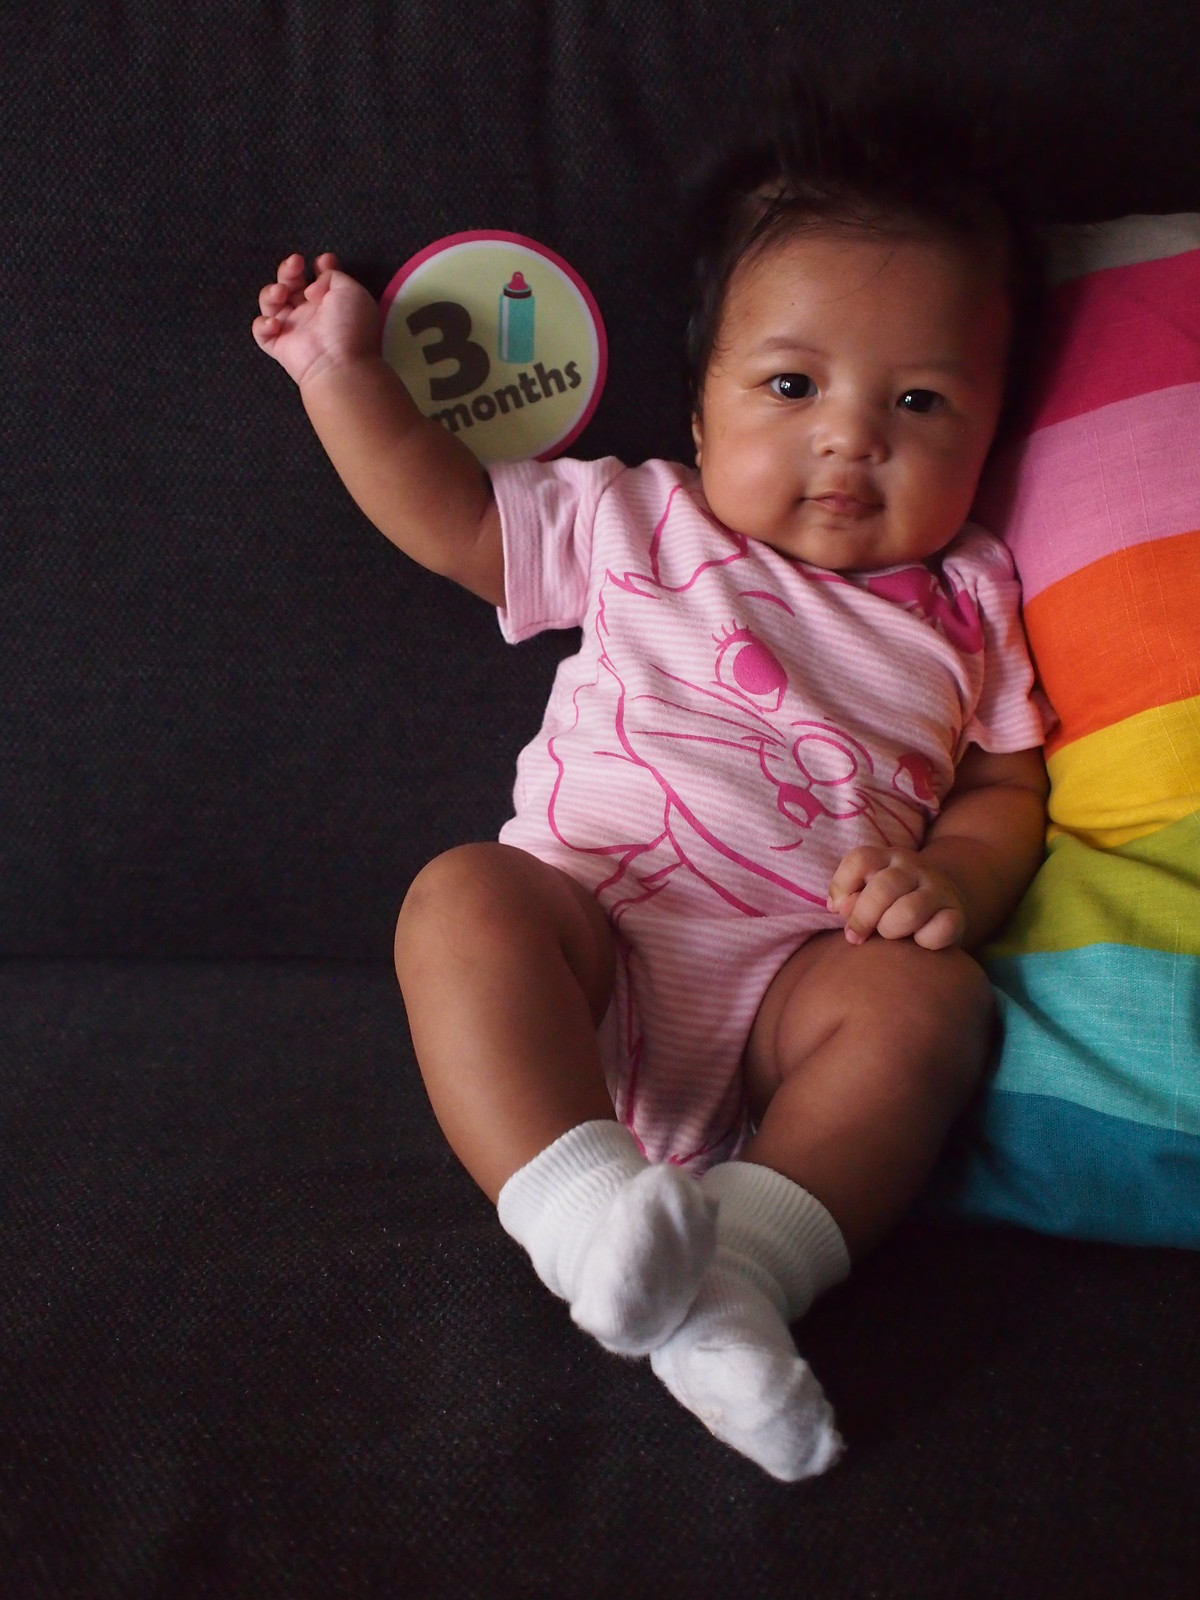 29 Nov 2013 - Zara is 3 months!